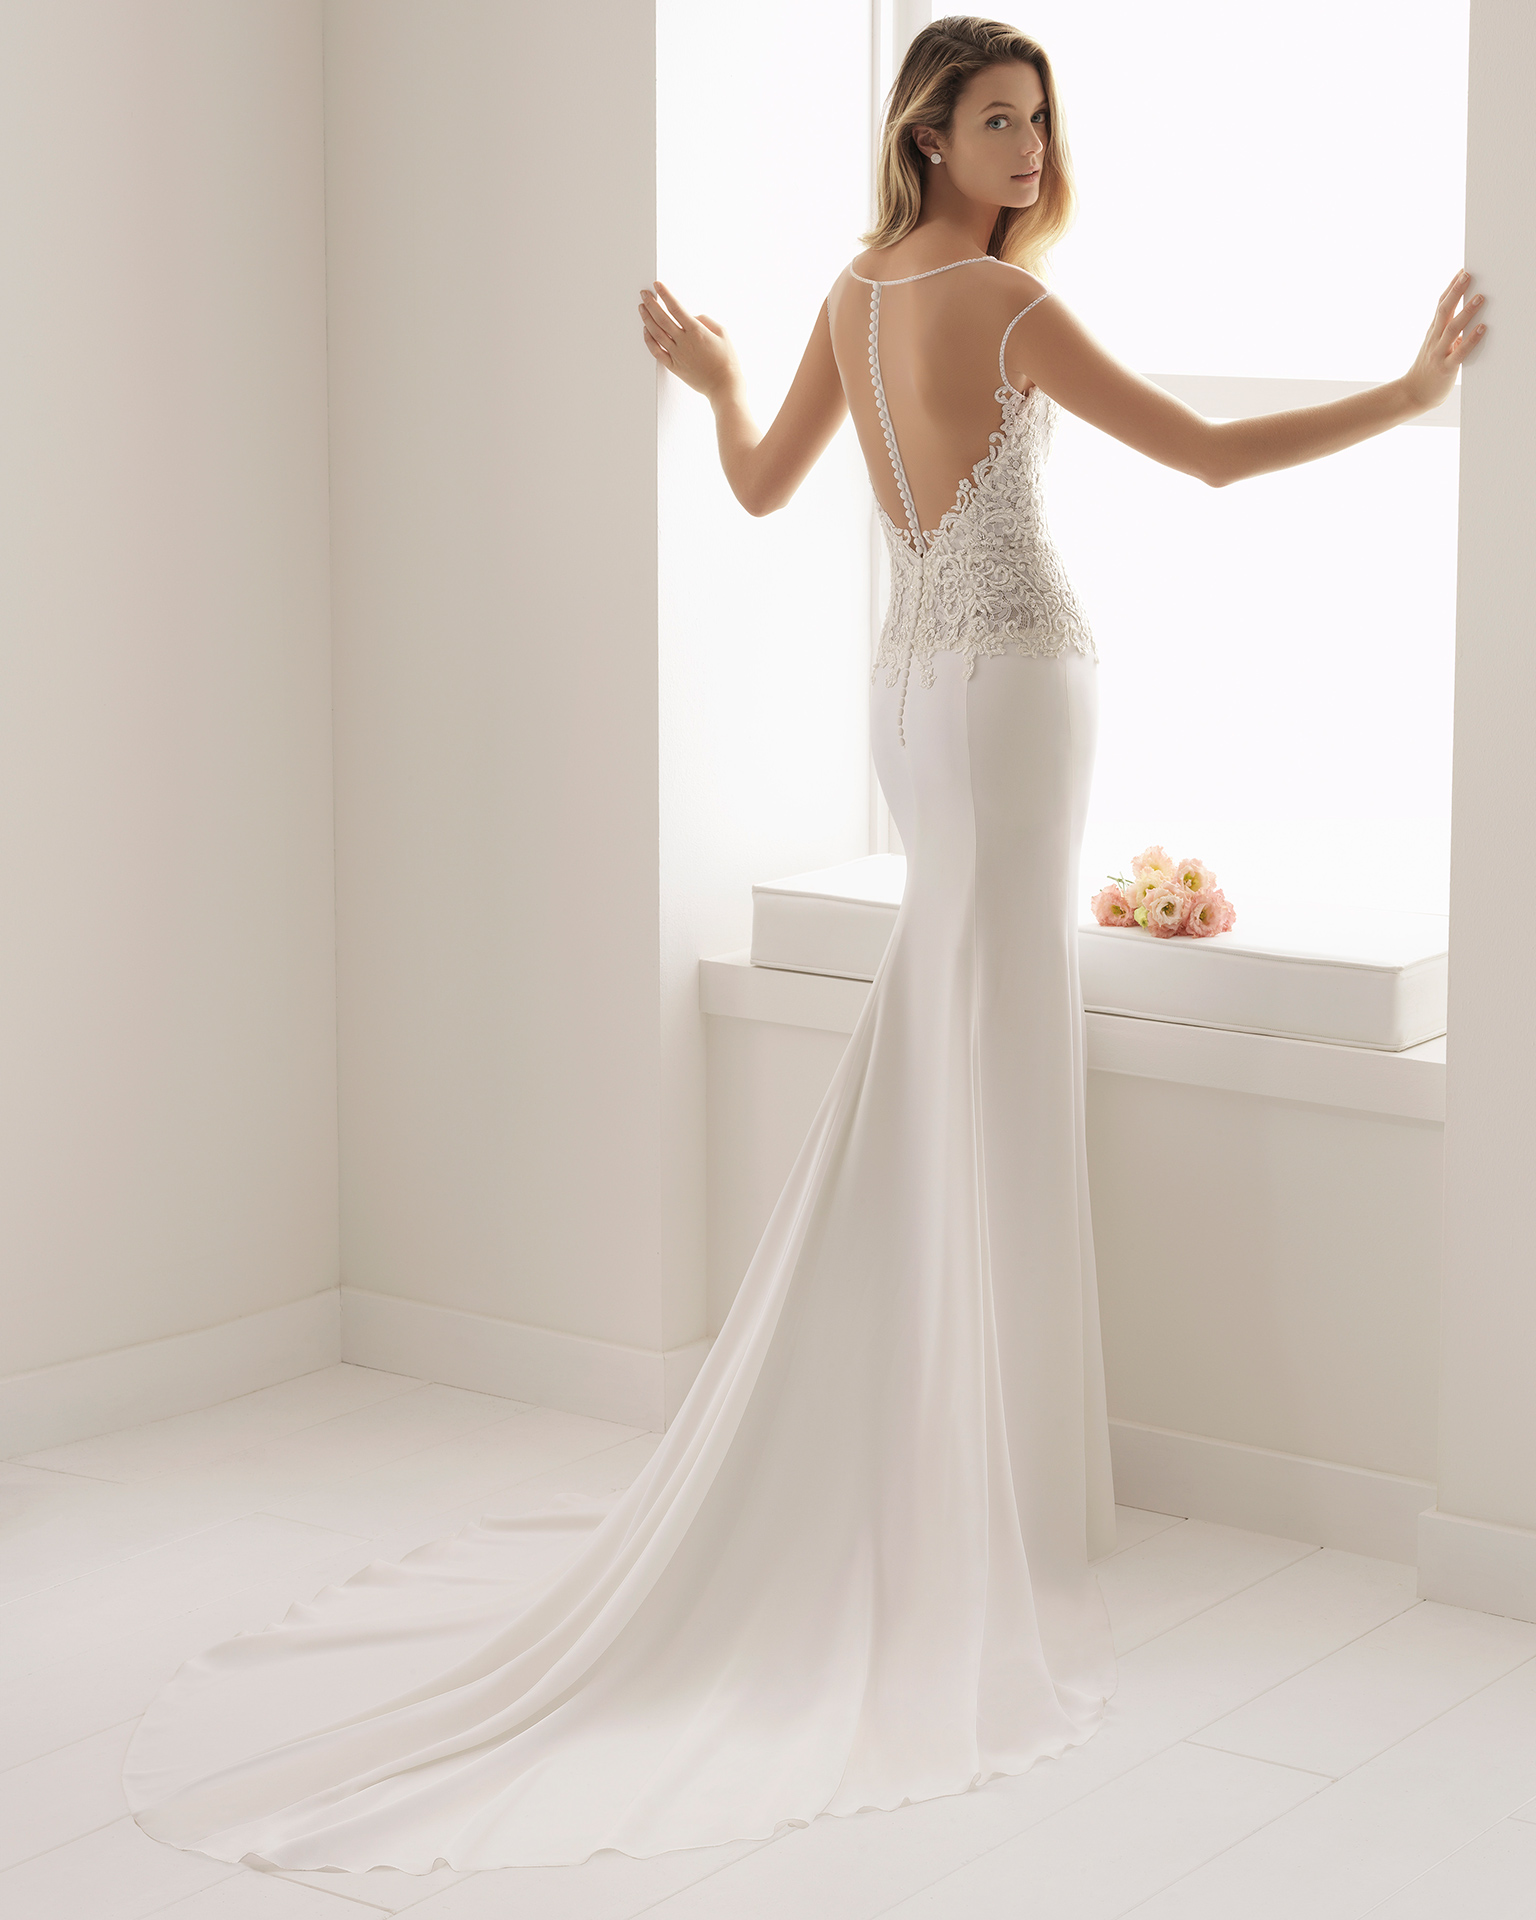 Mermaid-style beaded sheer lace and crepe wedding dress with illusion neckline and low back.